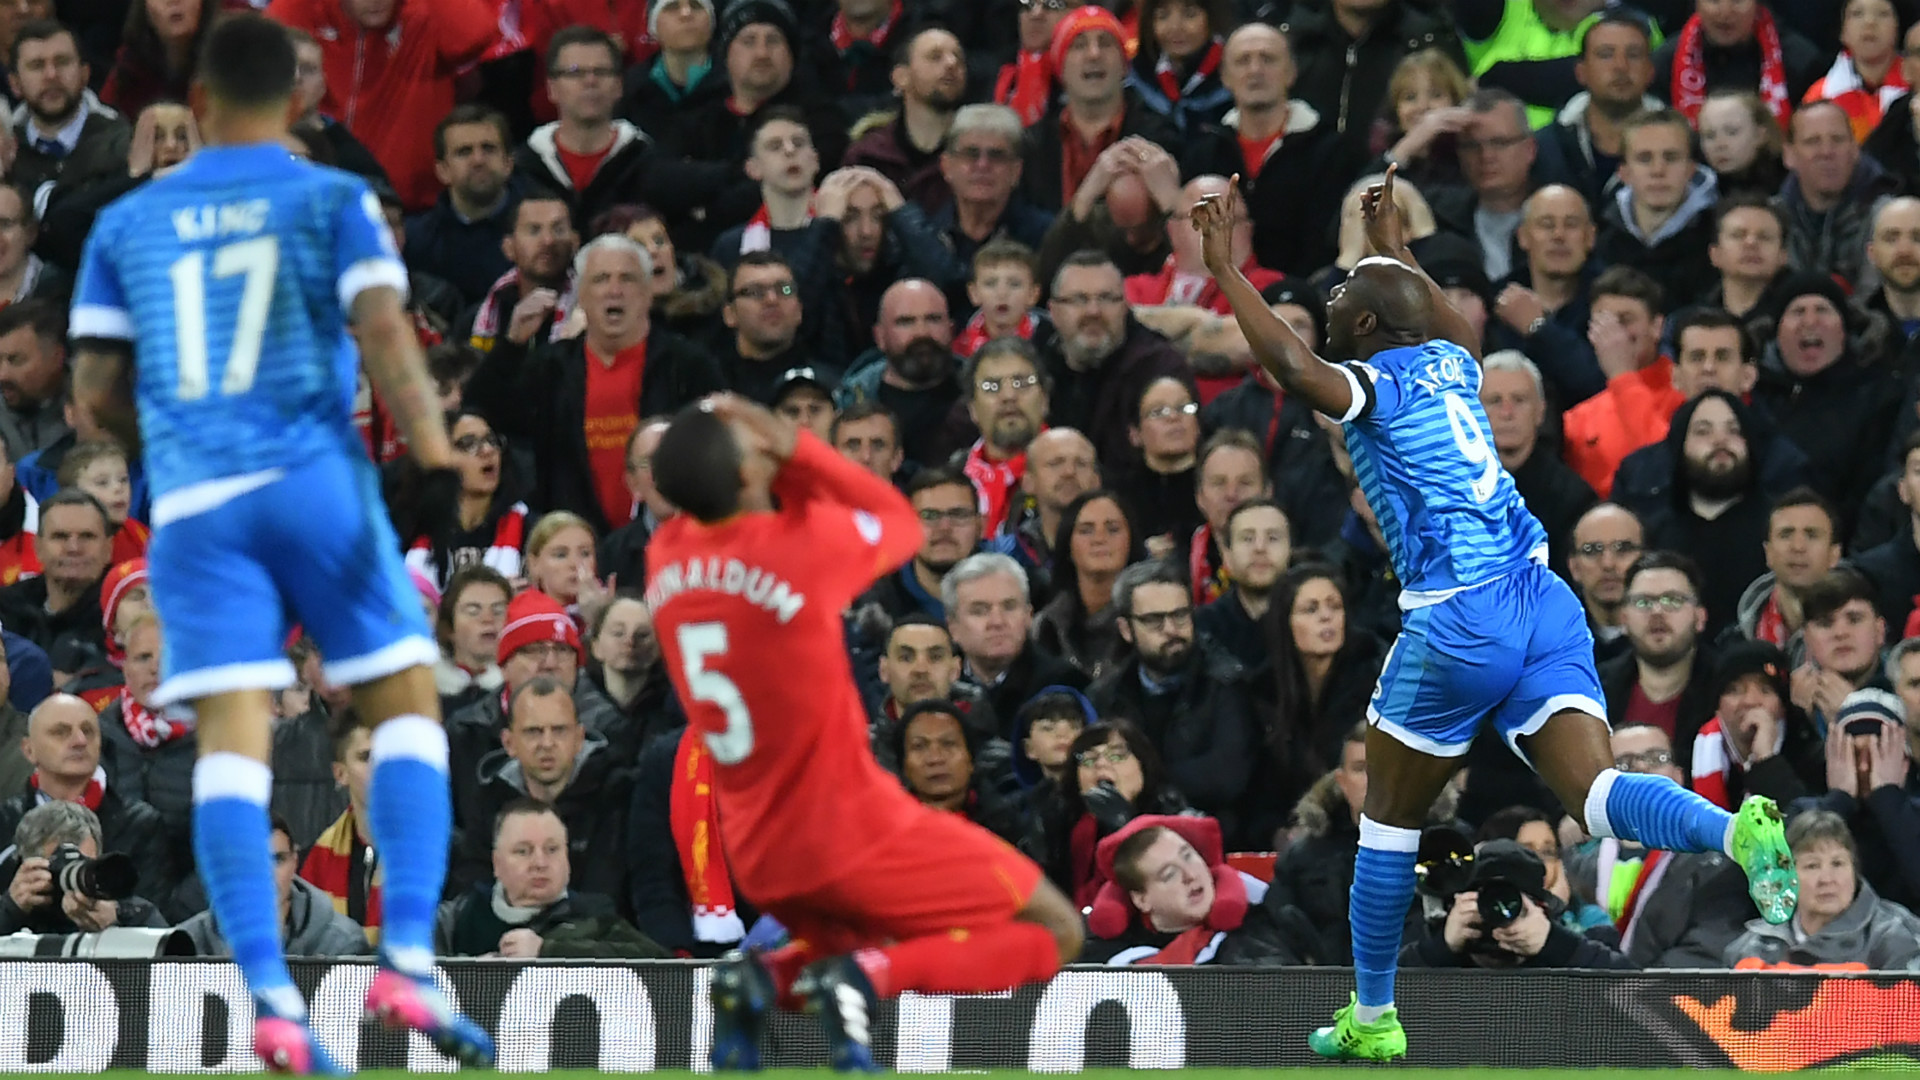 Liverpool held by Bournemouth as King crowns comeback